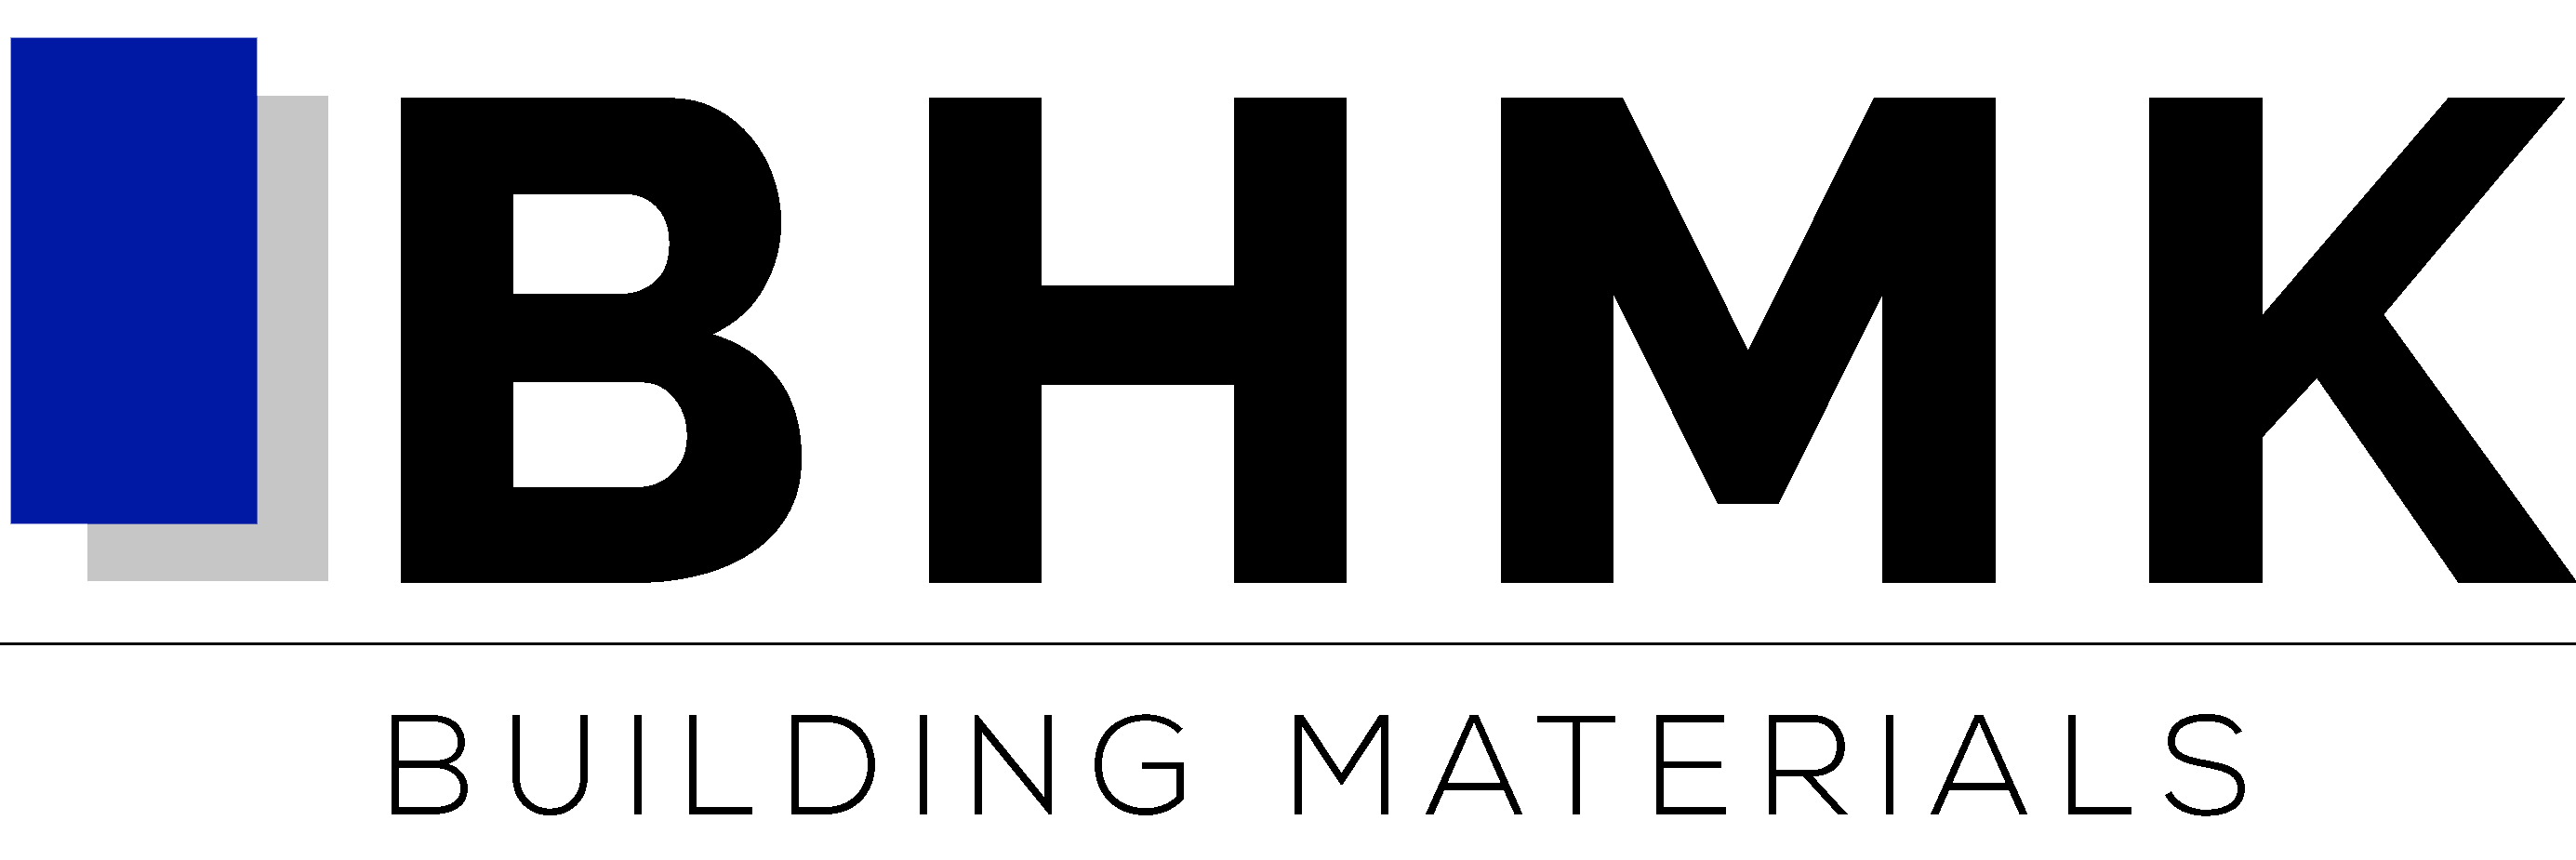 BHMK Building Materials Trading